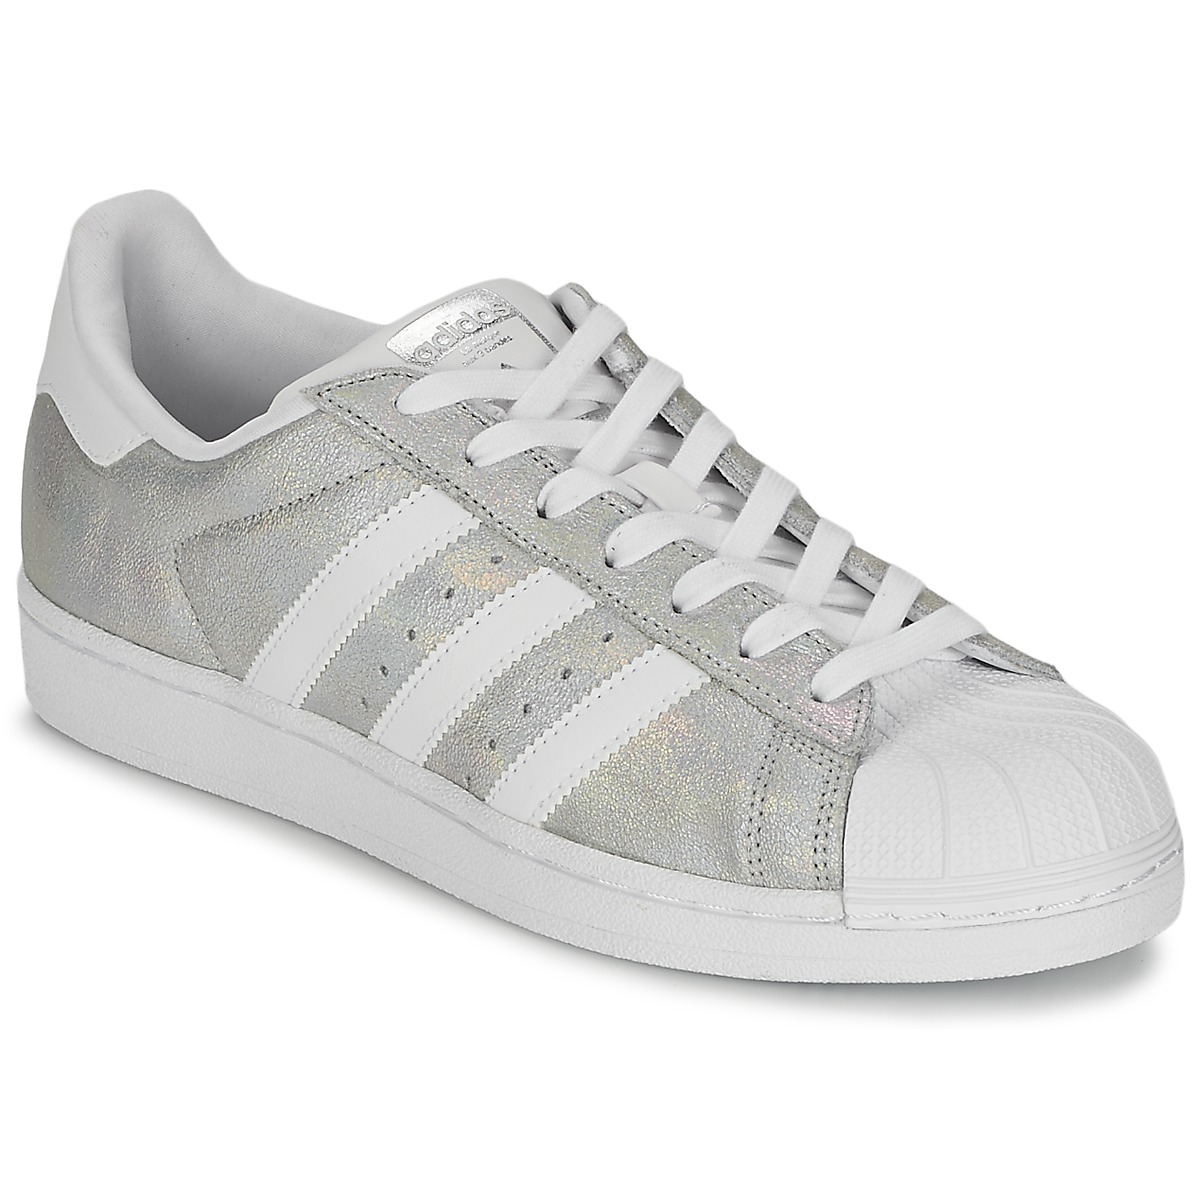 baskets basses adidas originals superstar w argent baskets femme spartoo ventes pas. Black Bedroom Furniture Sets. Home Design Ideas